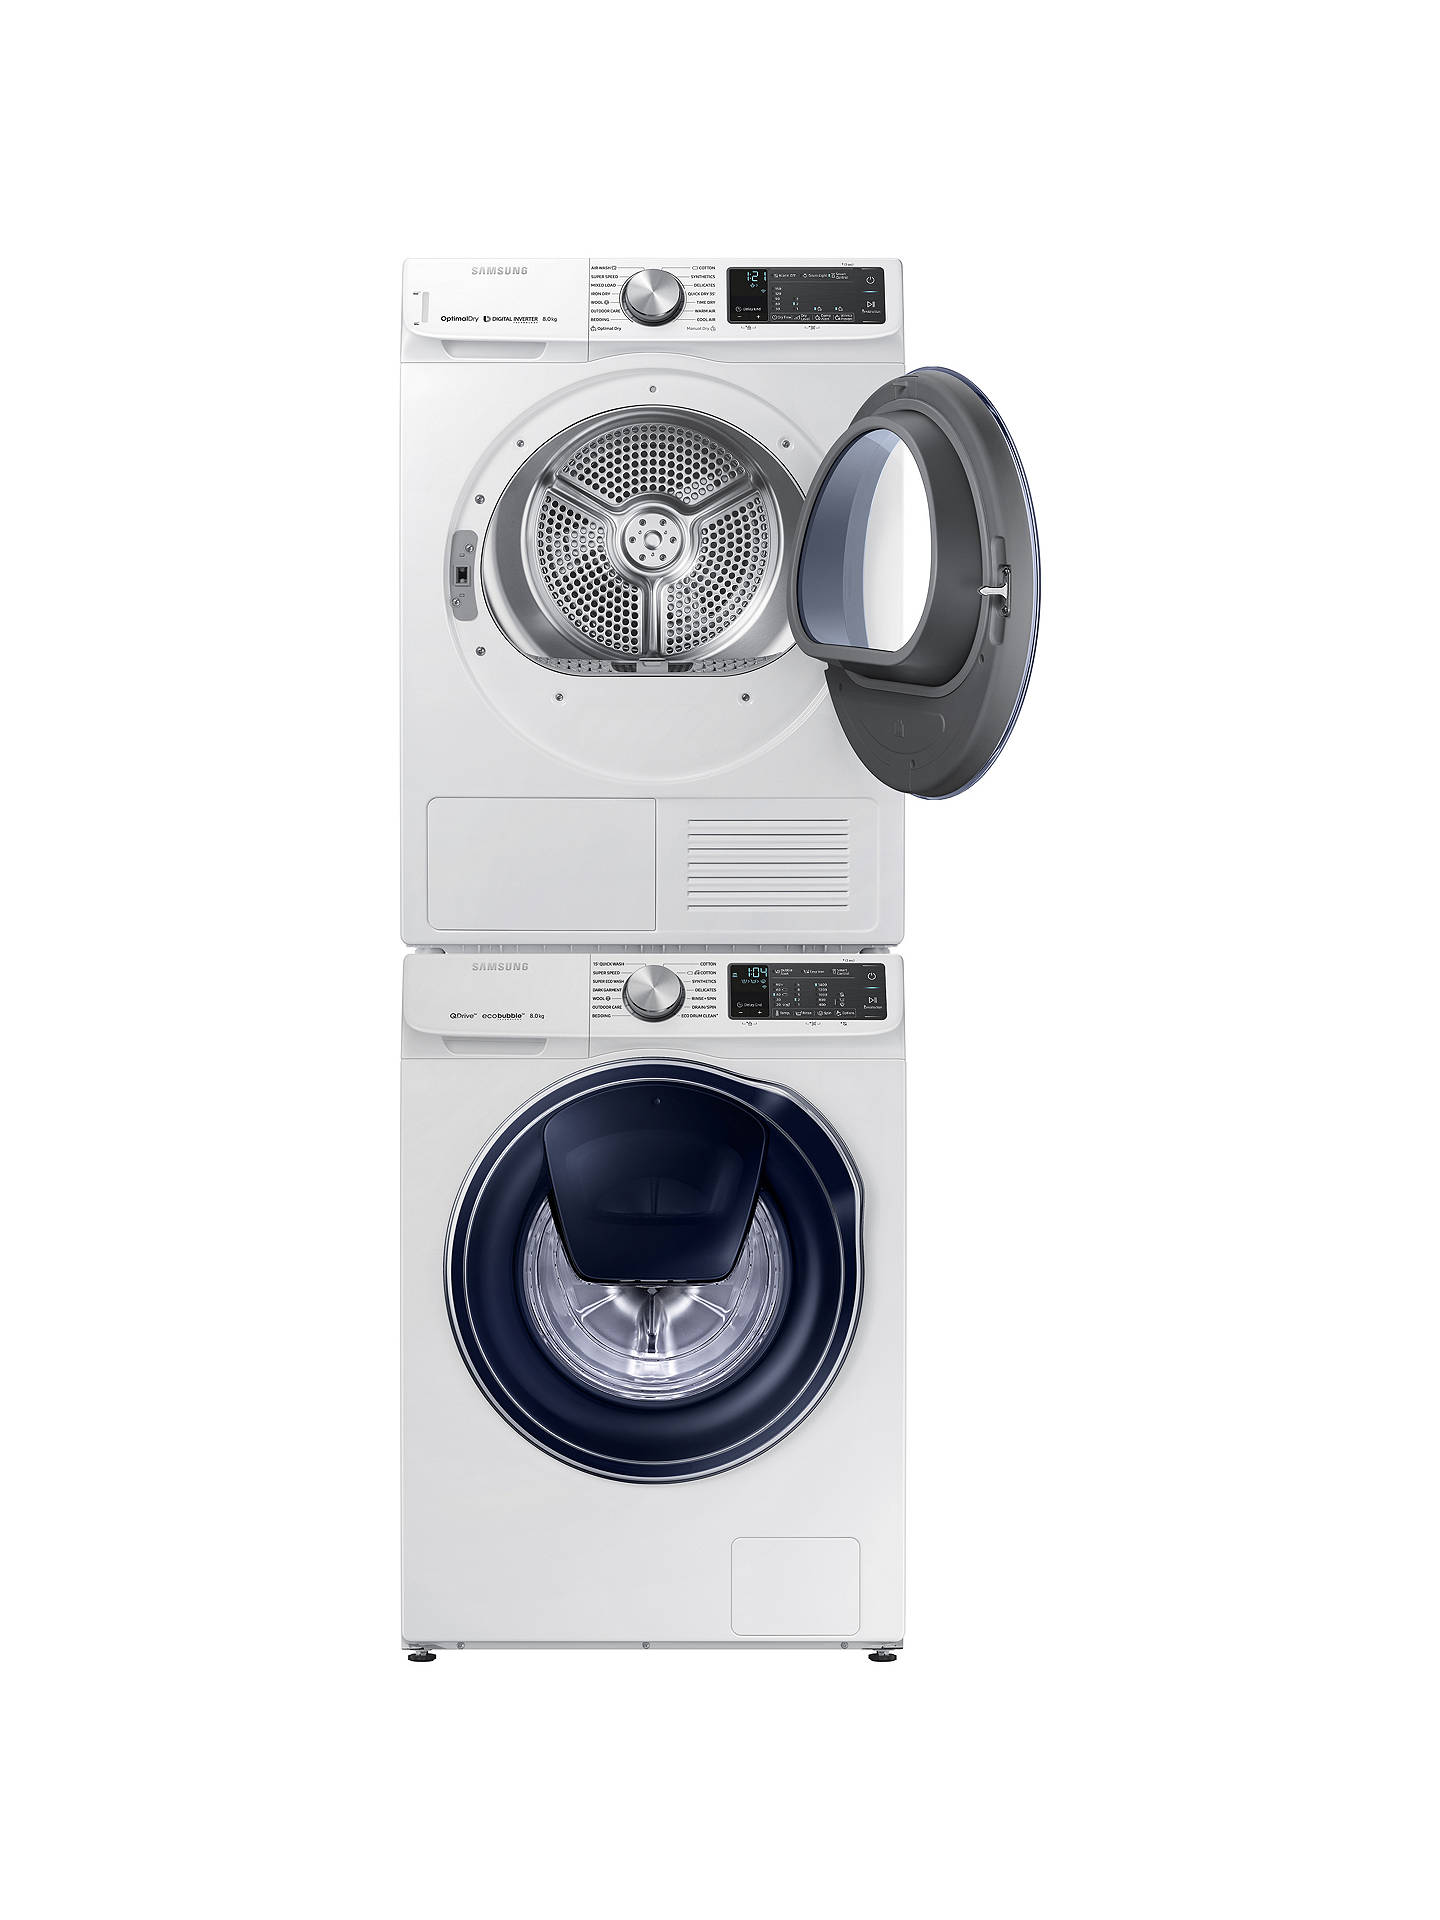 Buy Samsung DV80N62542W/EU Heat Pump Tumble Dryer, 8kg Load, A+++ Energy Rating, White Online at johnlewis.com